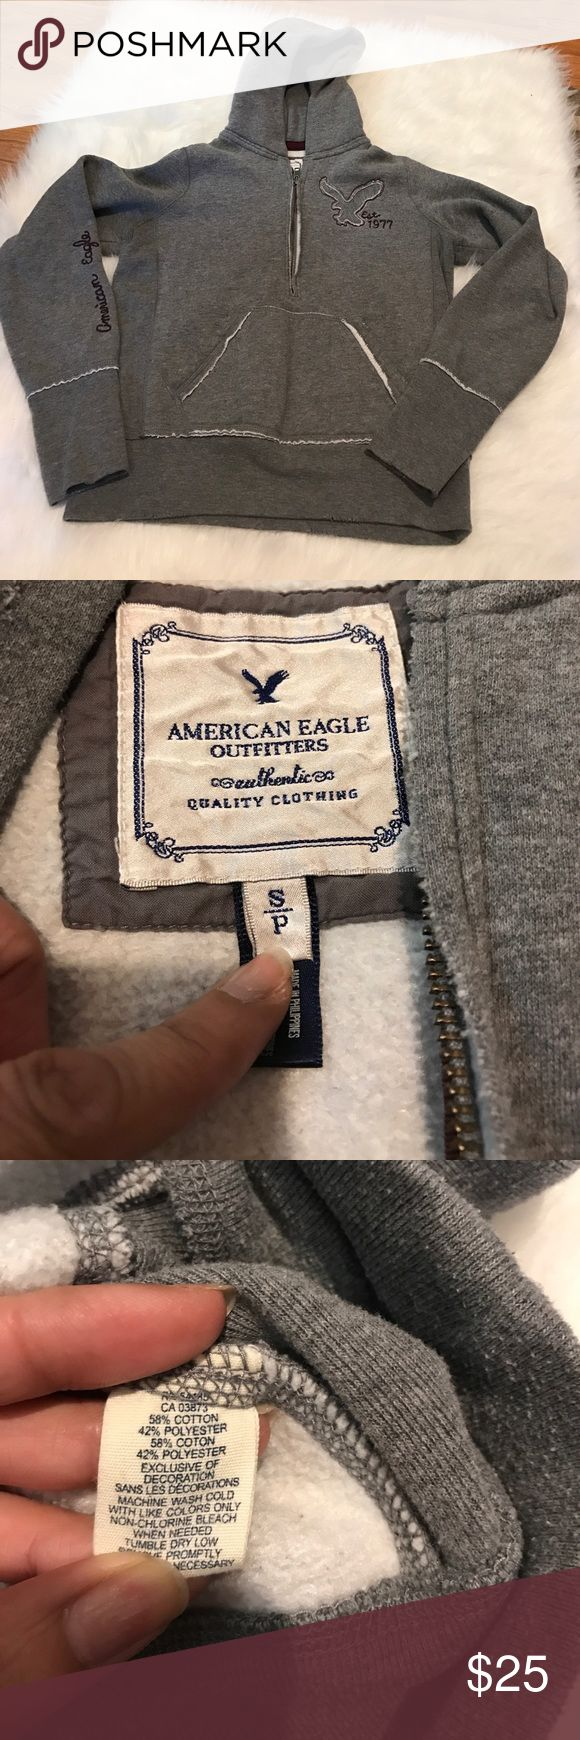 AMERICAN EAGLE OUTFITTERS HOODED PULLOVER Cute and great for those outdoor barbecues and parties. Good pre-owned condition, with some snags to the outside of both pockets, front of hood, end of sleeves, and bottom, see pics# 4,5,6&7. 0172221400 American Eagle Outfitters Tops Sweatshirts & Hoodies